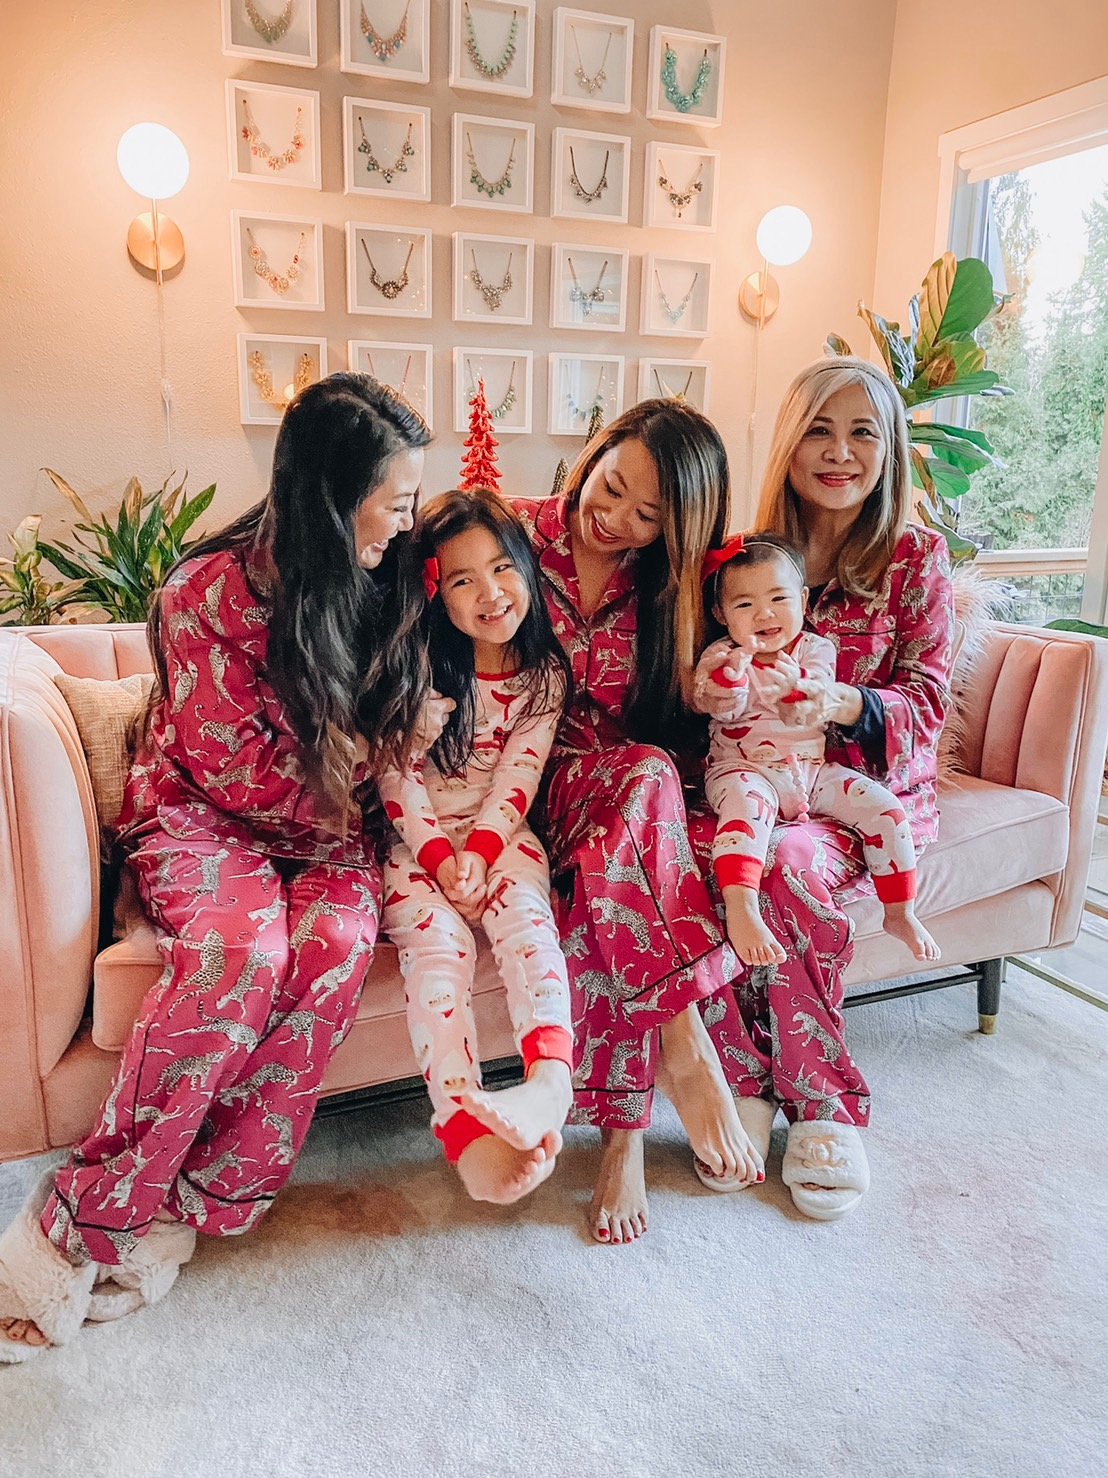 12 pajama sets under $100, 12 cute pajama sets to gift or keep, cute pj sets for the holidays, cute pj sets to give as gifts, pajama gift guide, pjs gift guide, gifts for mom, gifts for her, gift guide for her, holiday gift ideas, gift ideas under $100, best gifts under $100